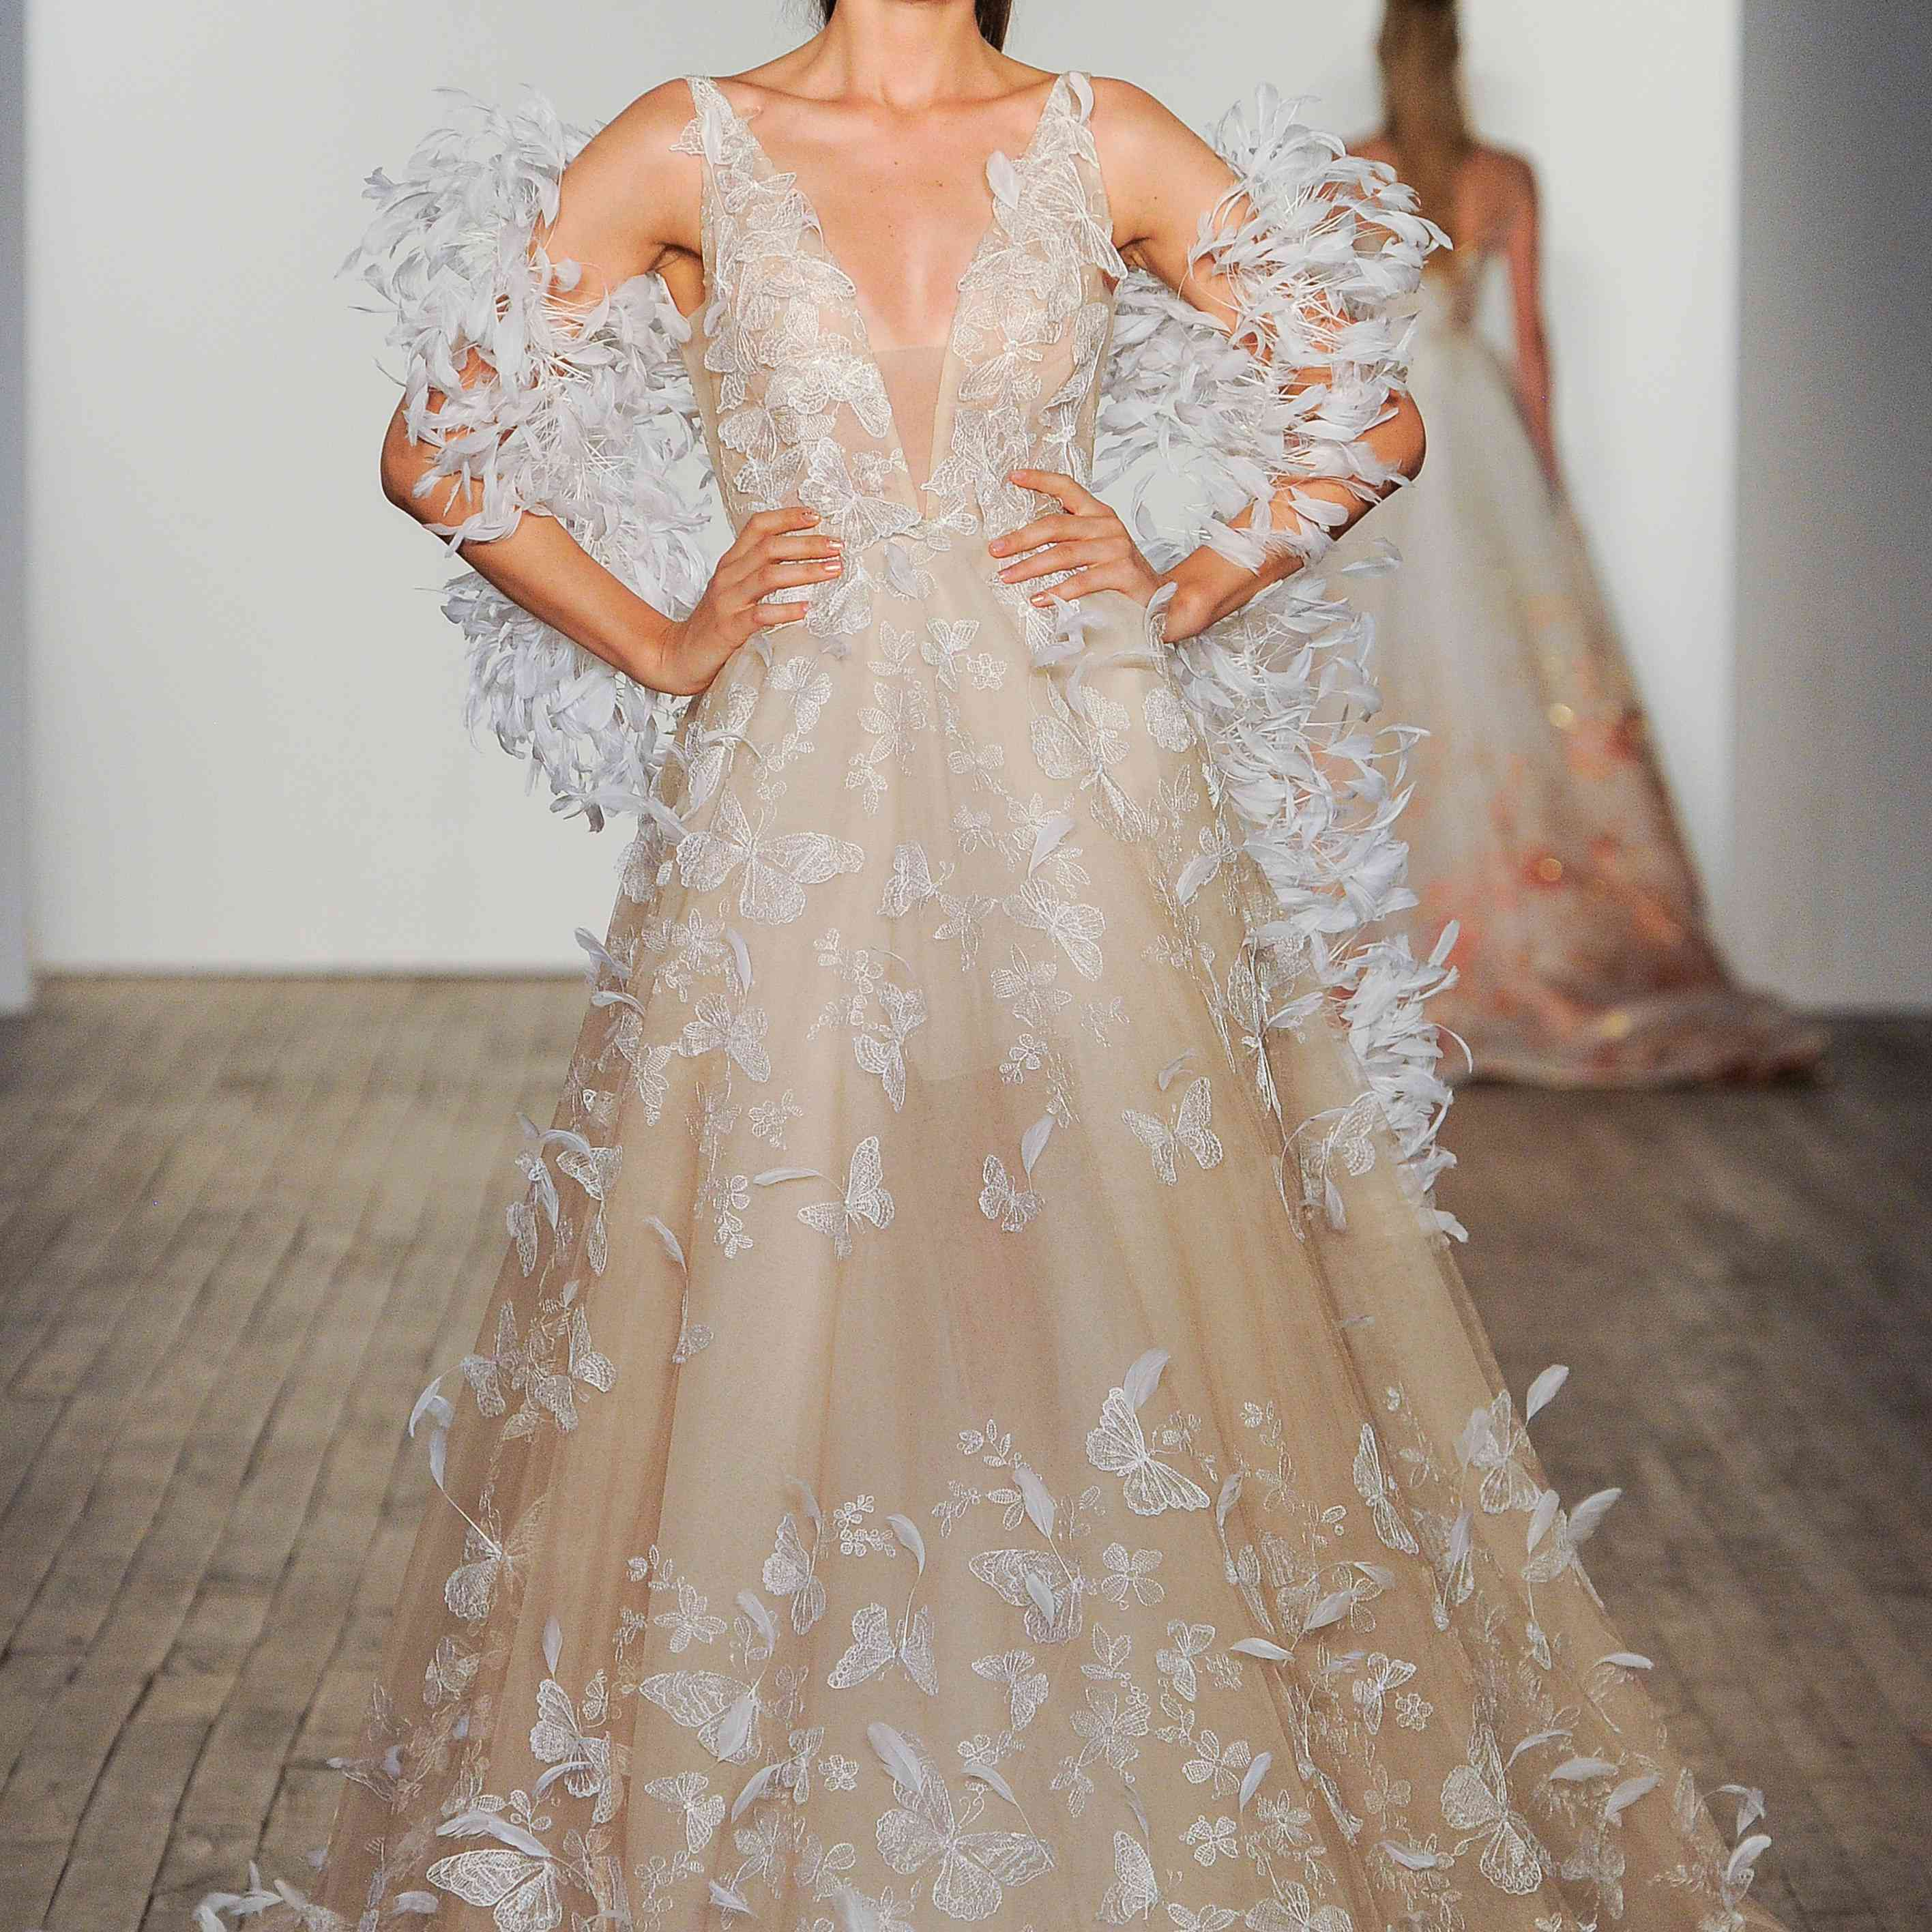 Mariposa sleeveless wedding dress with butterfly embroidery